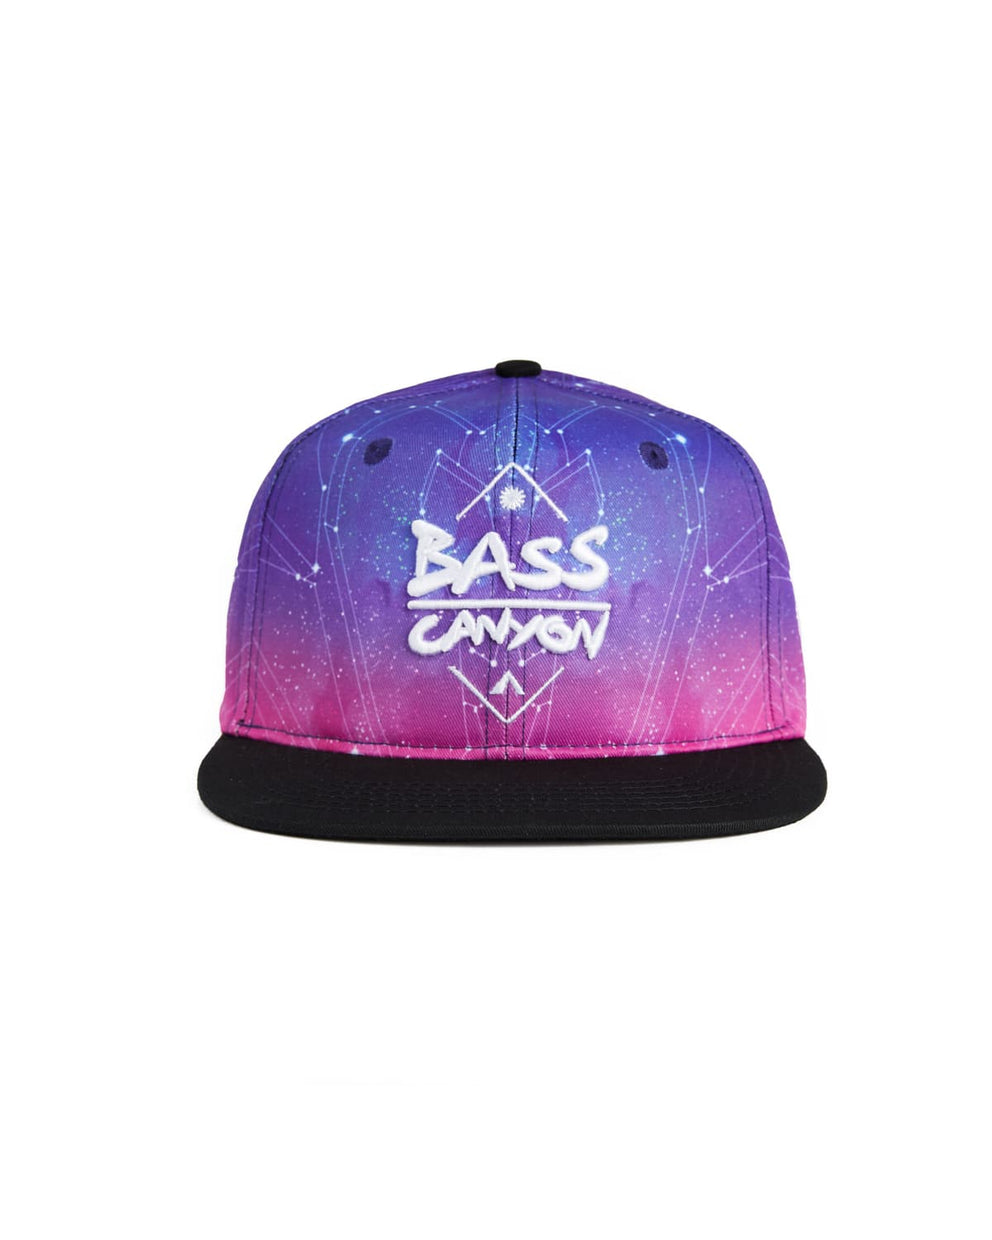 Bass Canyon 'Constellations' Snapback - Purple/Black